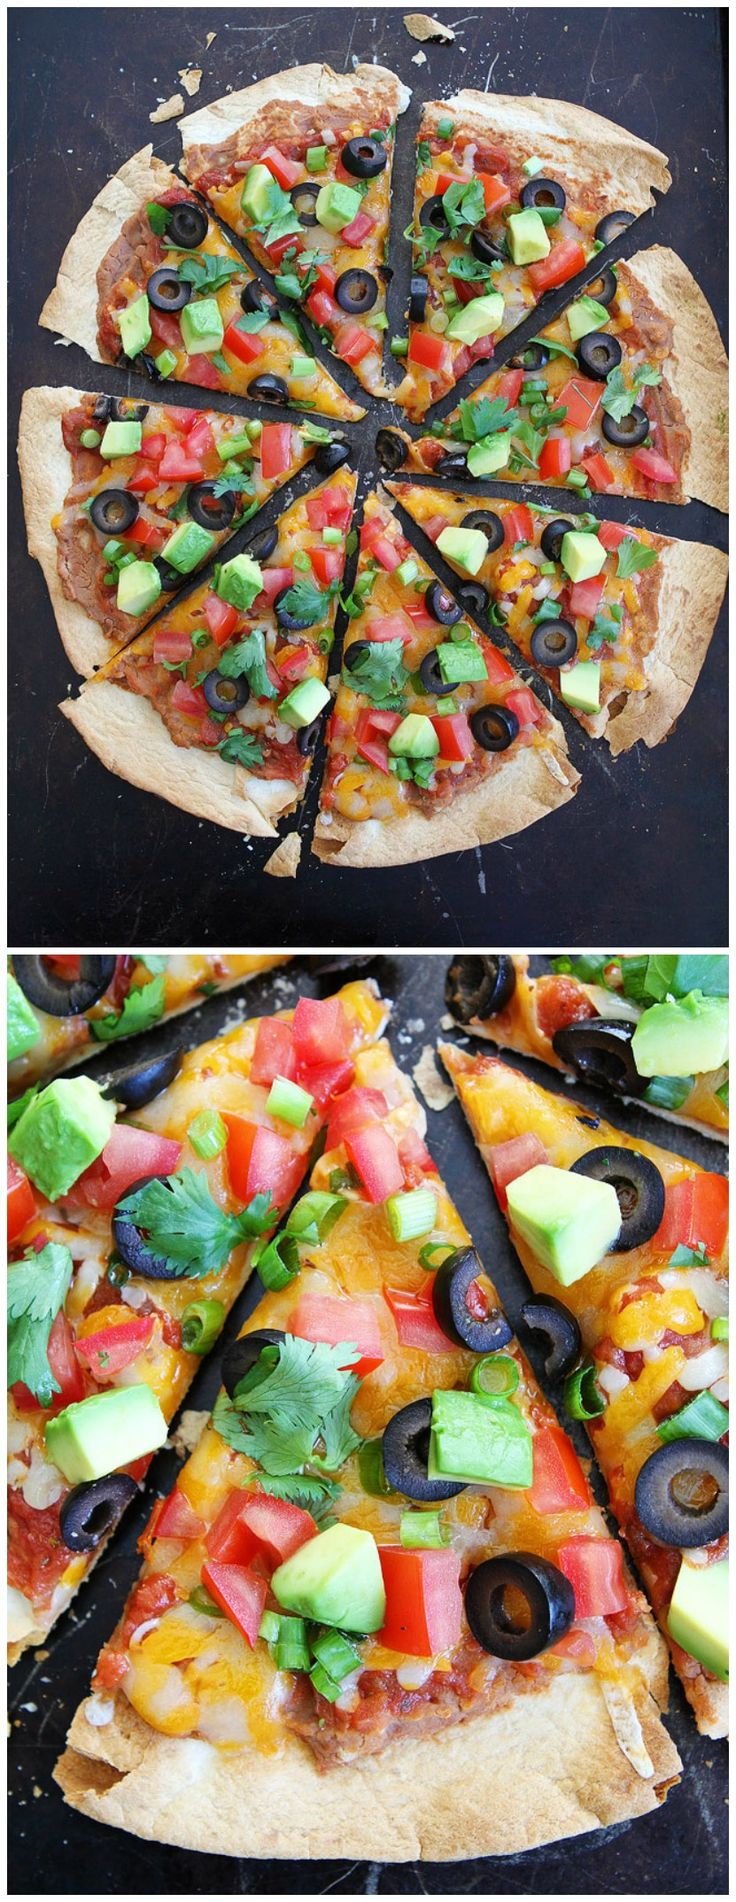 Crispy Mexican Tortilla Pizza Recipe on twopeasandtheirpod.com This easy pizza only takes 15 minutes to make! from @twopeasandpod